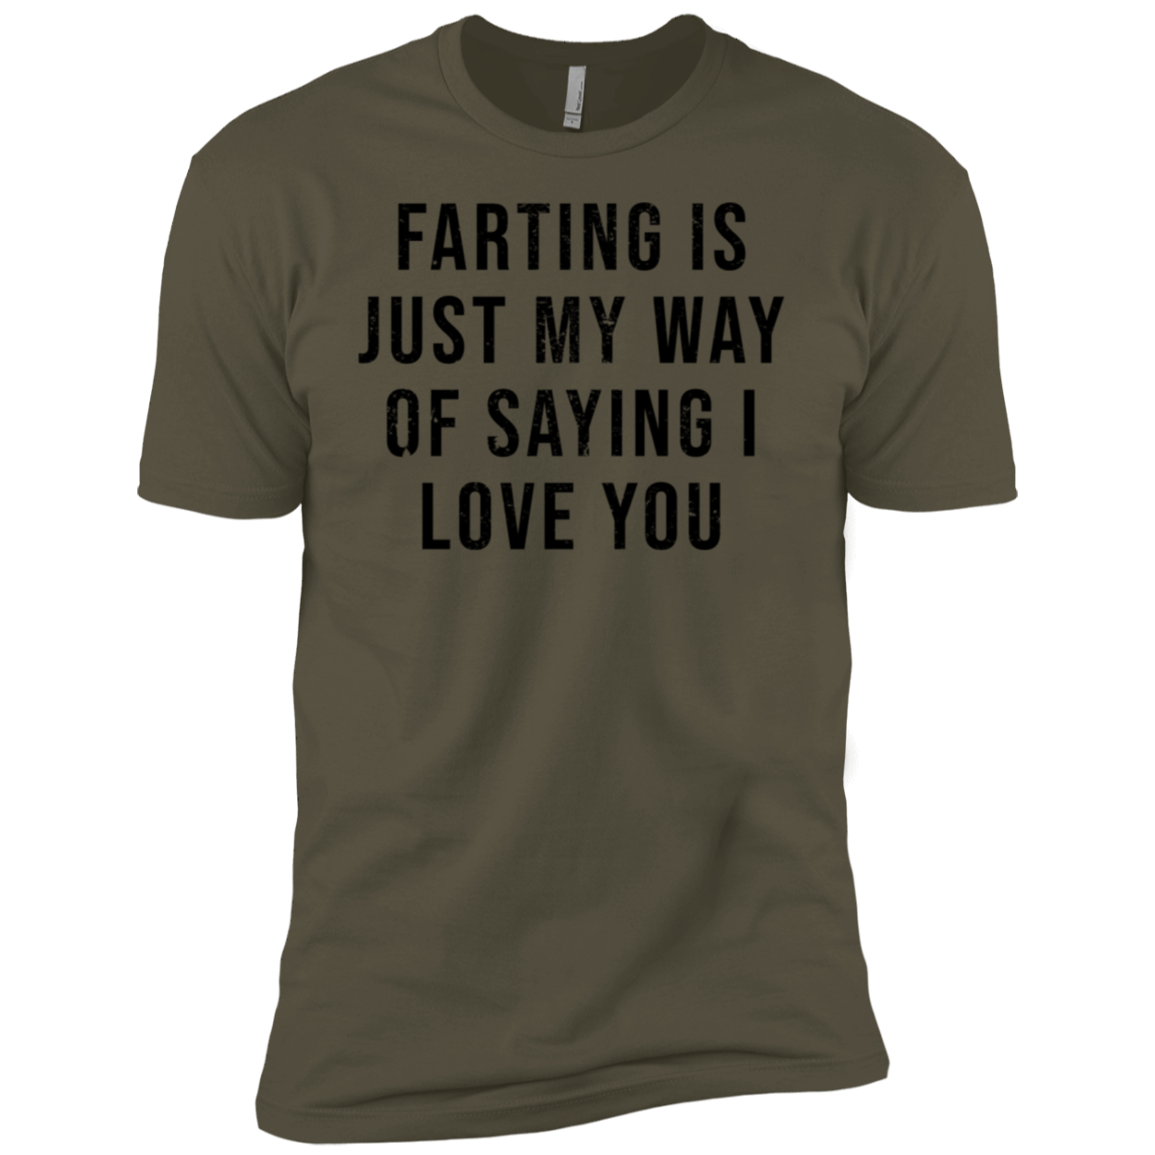 Farting Is Just My Way Of Saying I Love You Men's Classic Tee